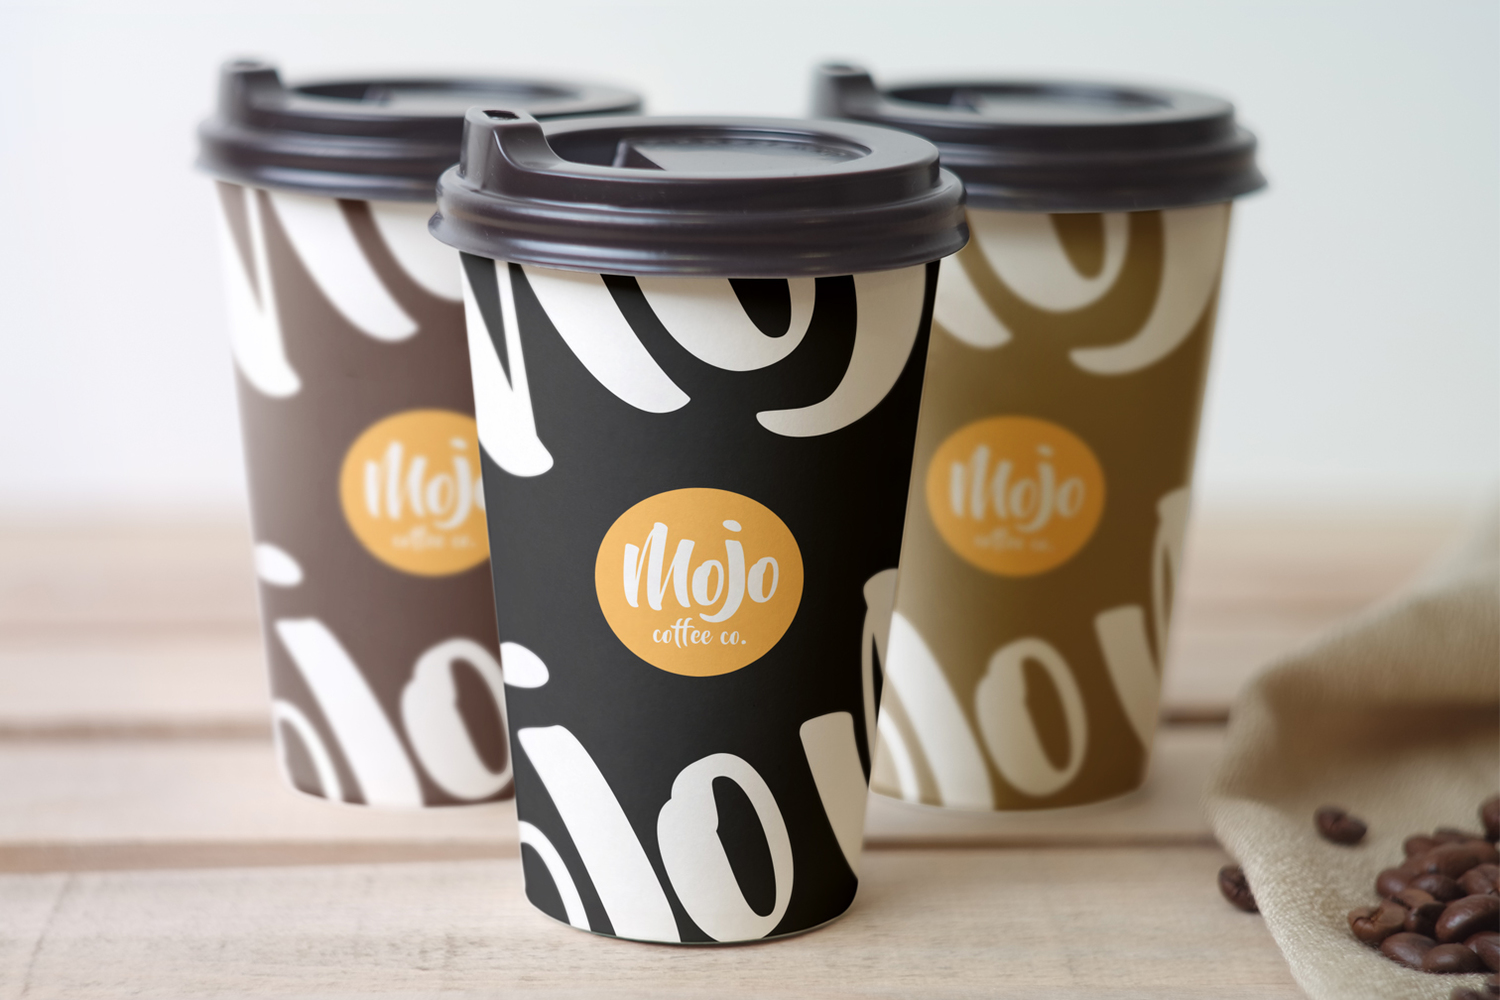 Packaging design for coffee cup - Mojo